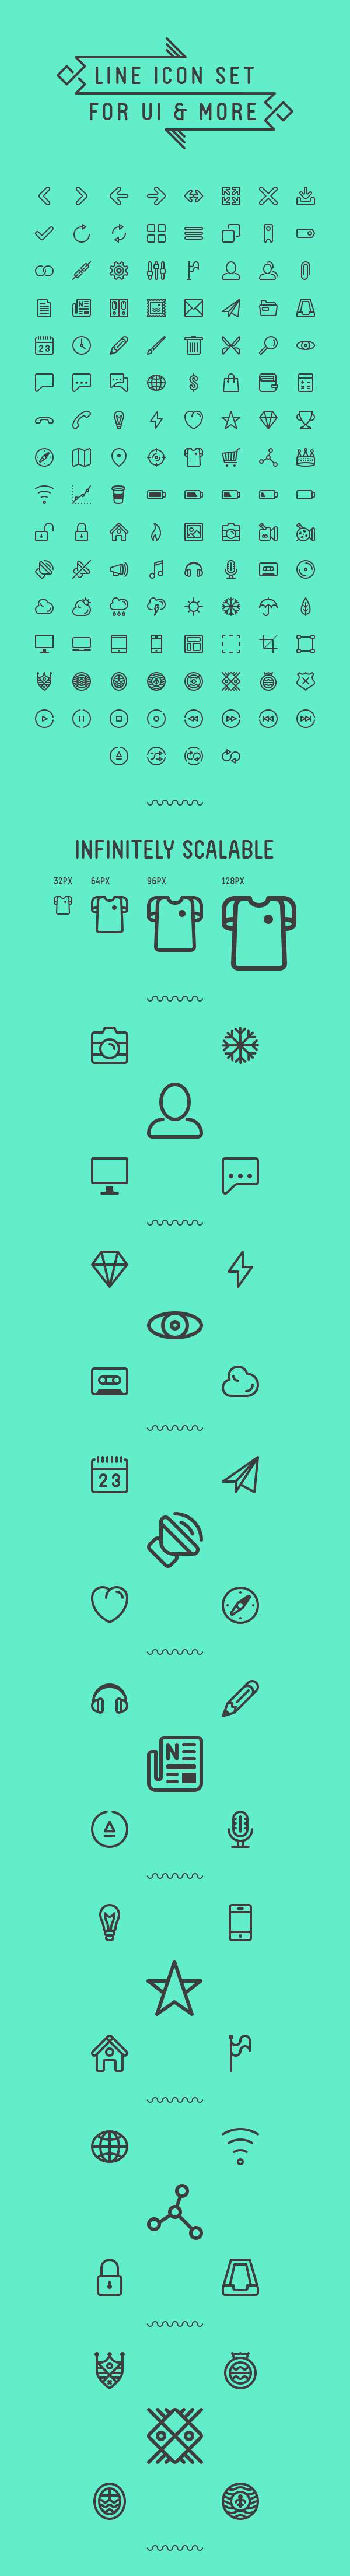 line icons for ui